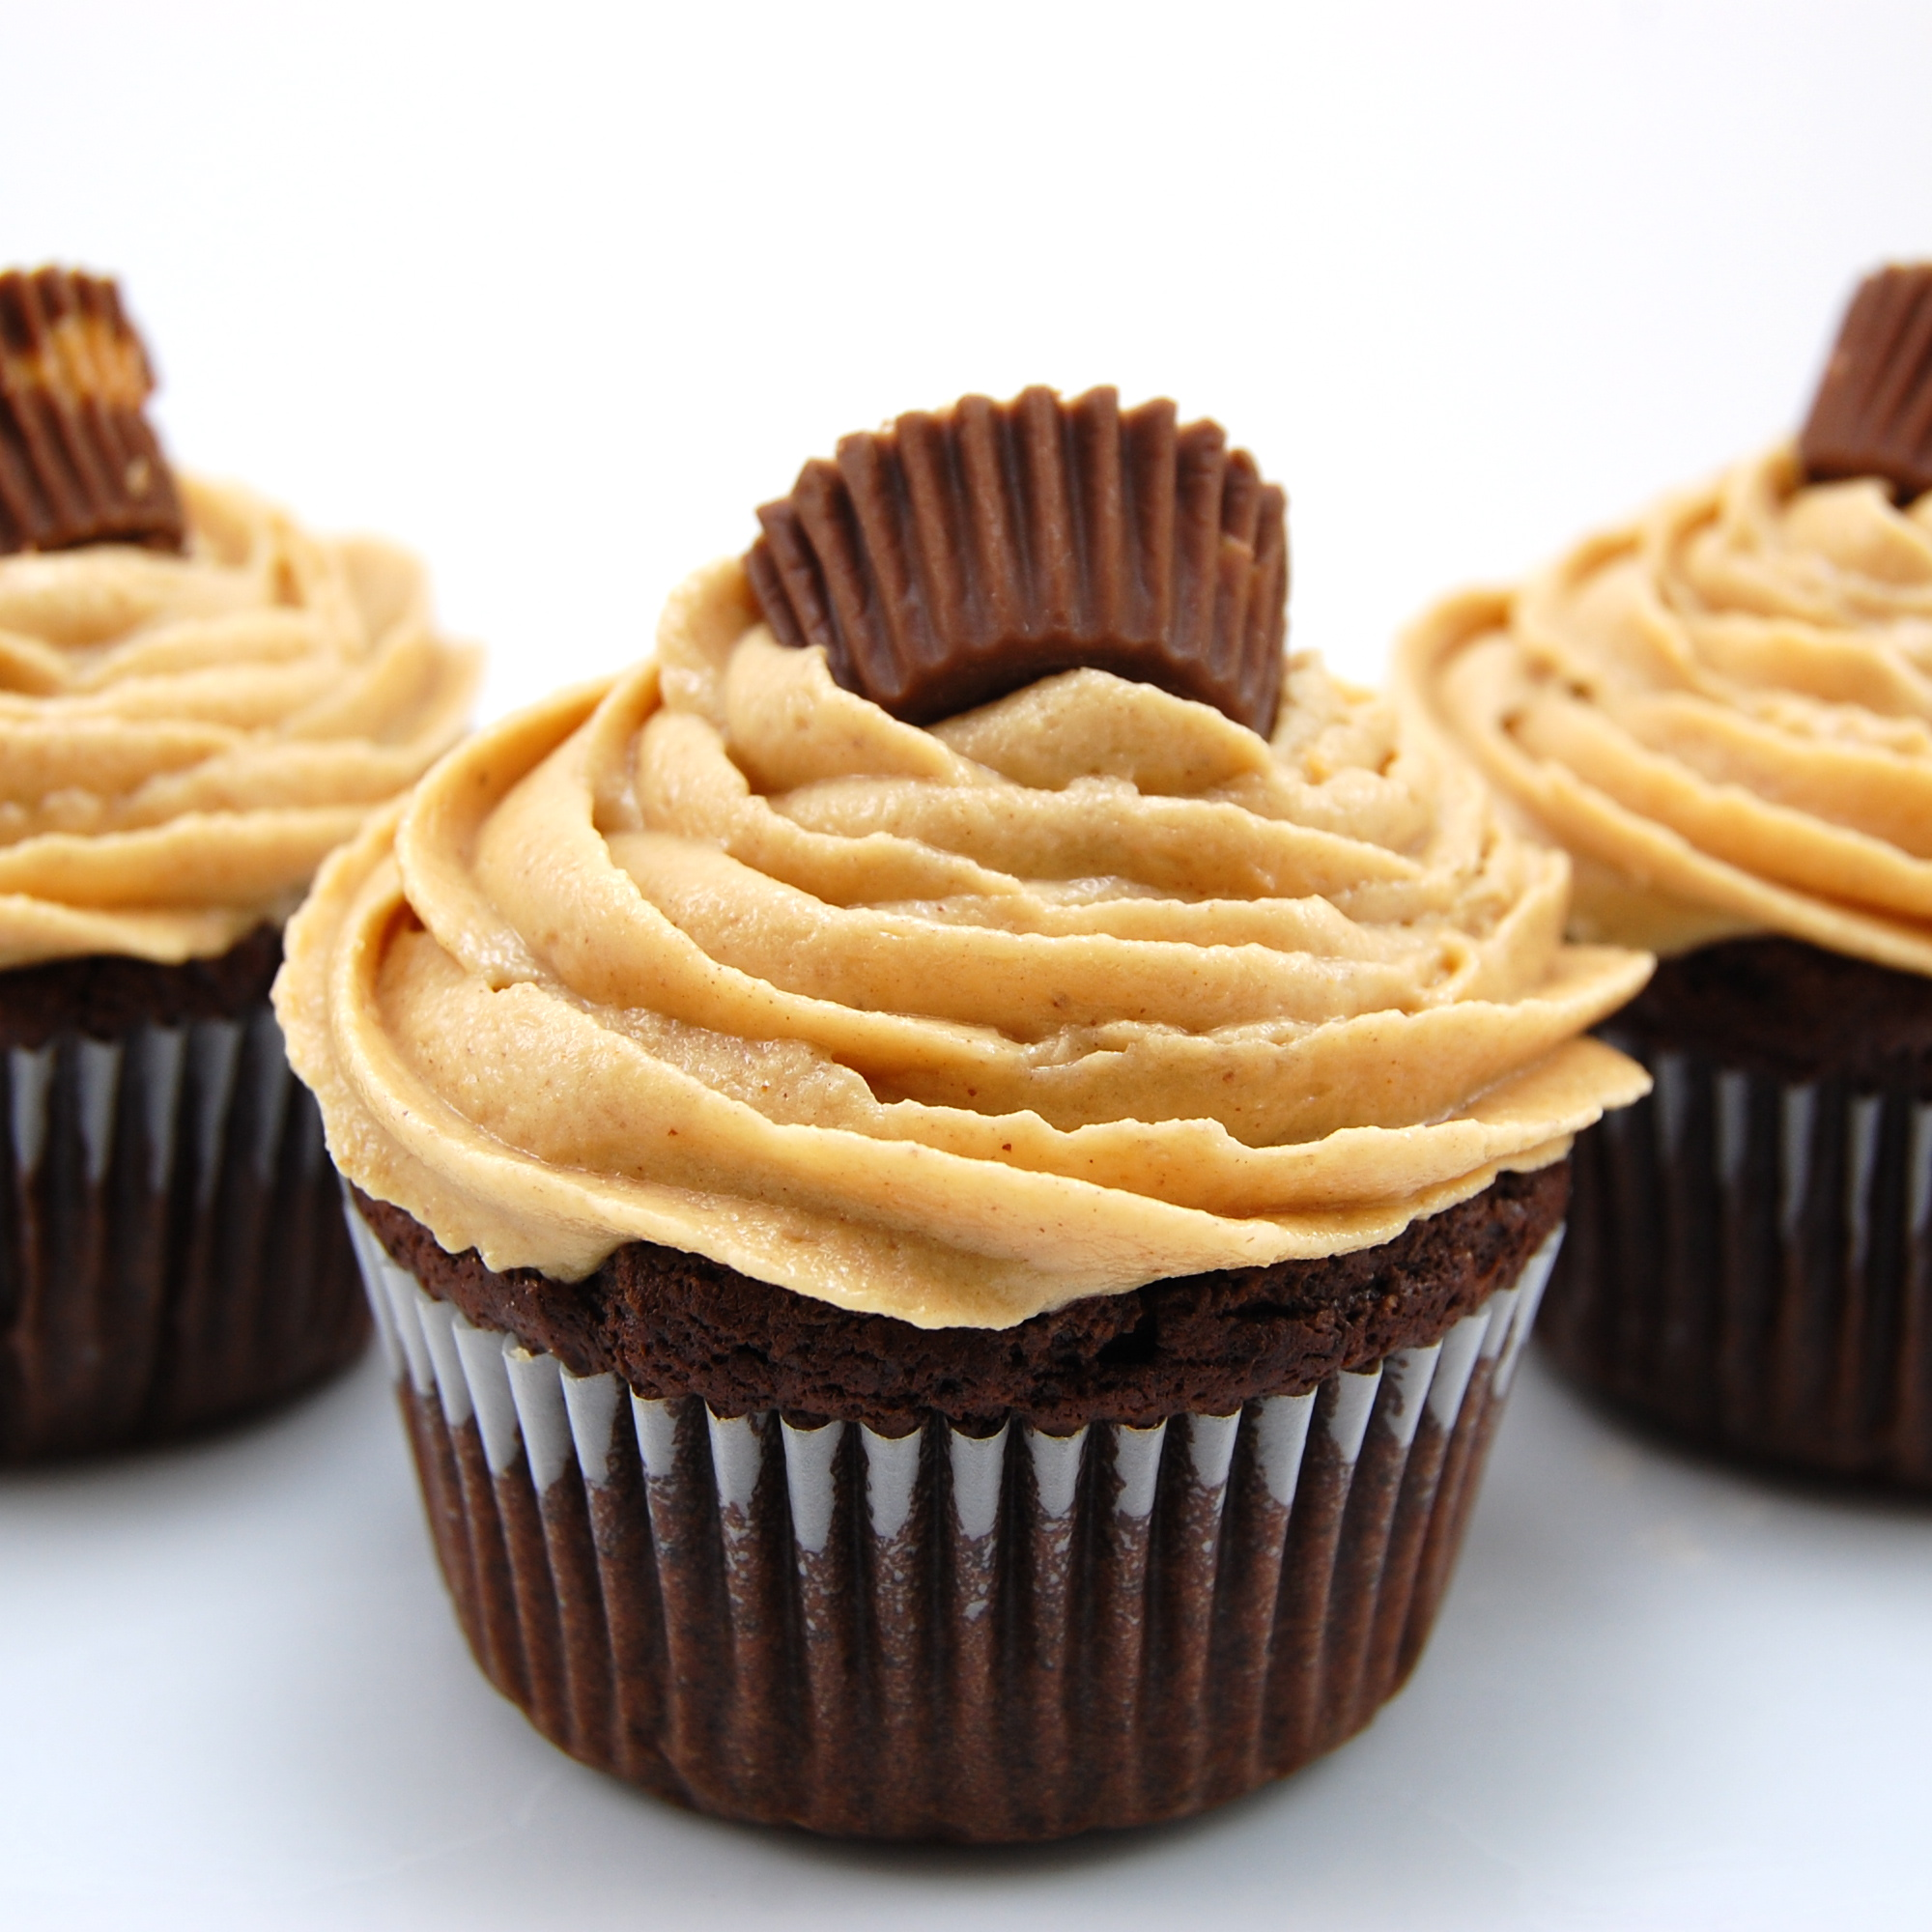 chocolate cupcakes filled with peanut butter cups